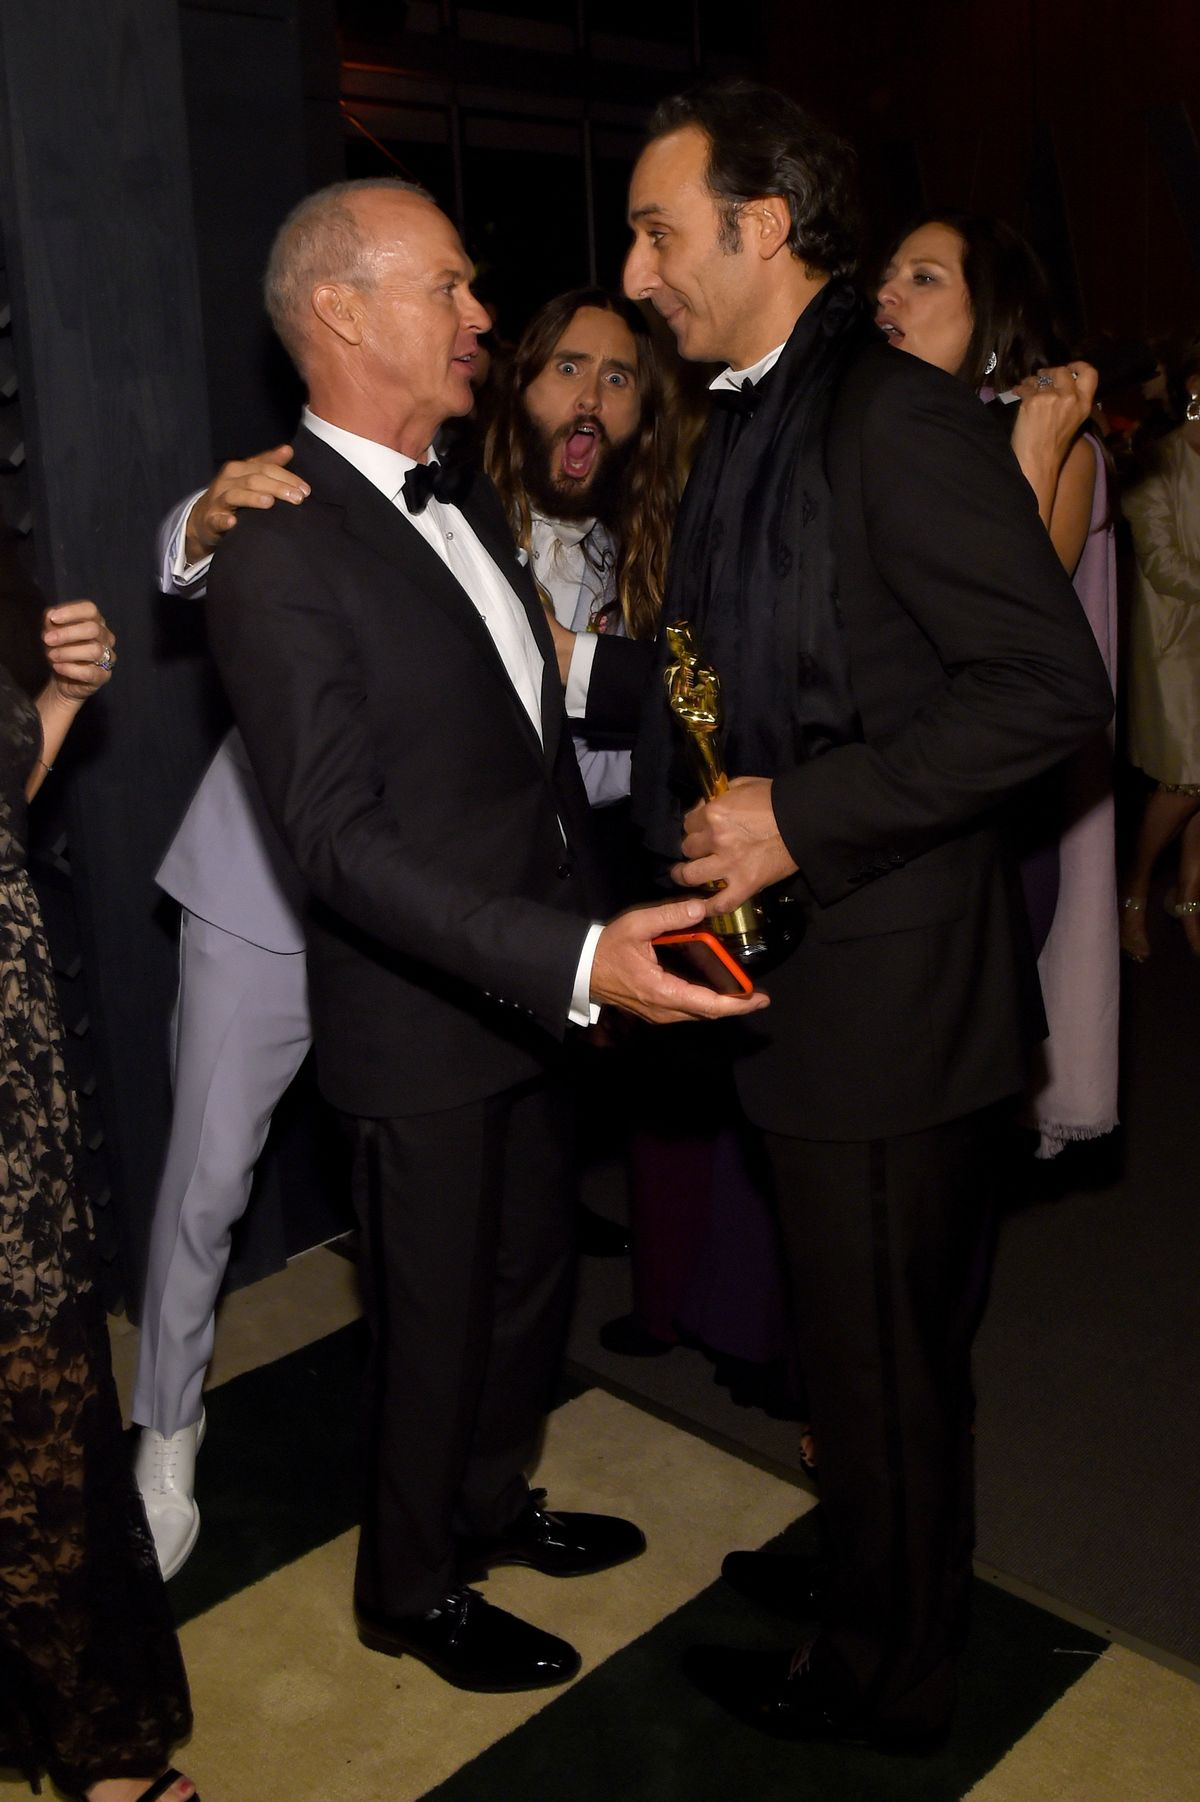 14 Pictures Proving That Jared Leto Had More Fun Than Anyone On Oscar Night Letobomb-1424700238.jpg?quality=0